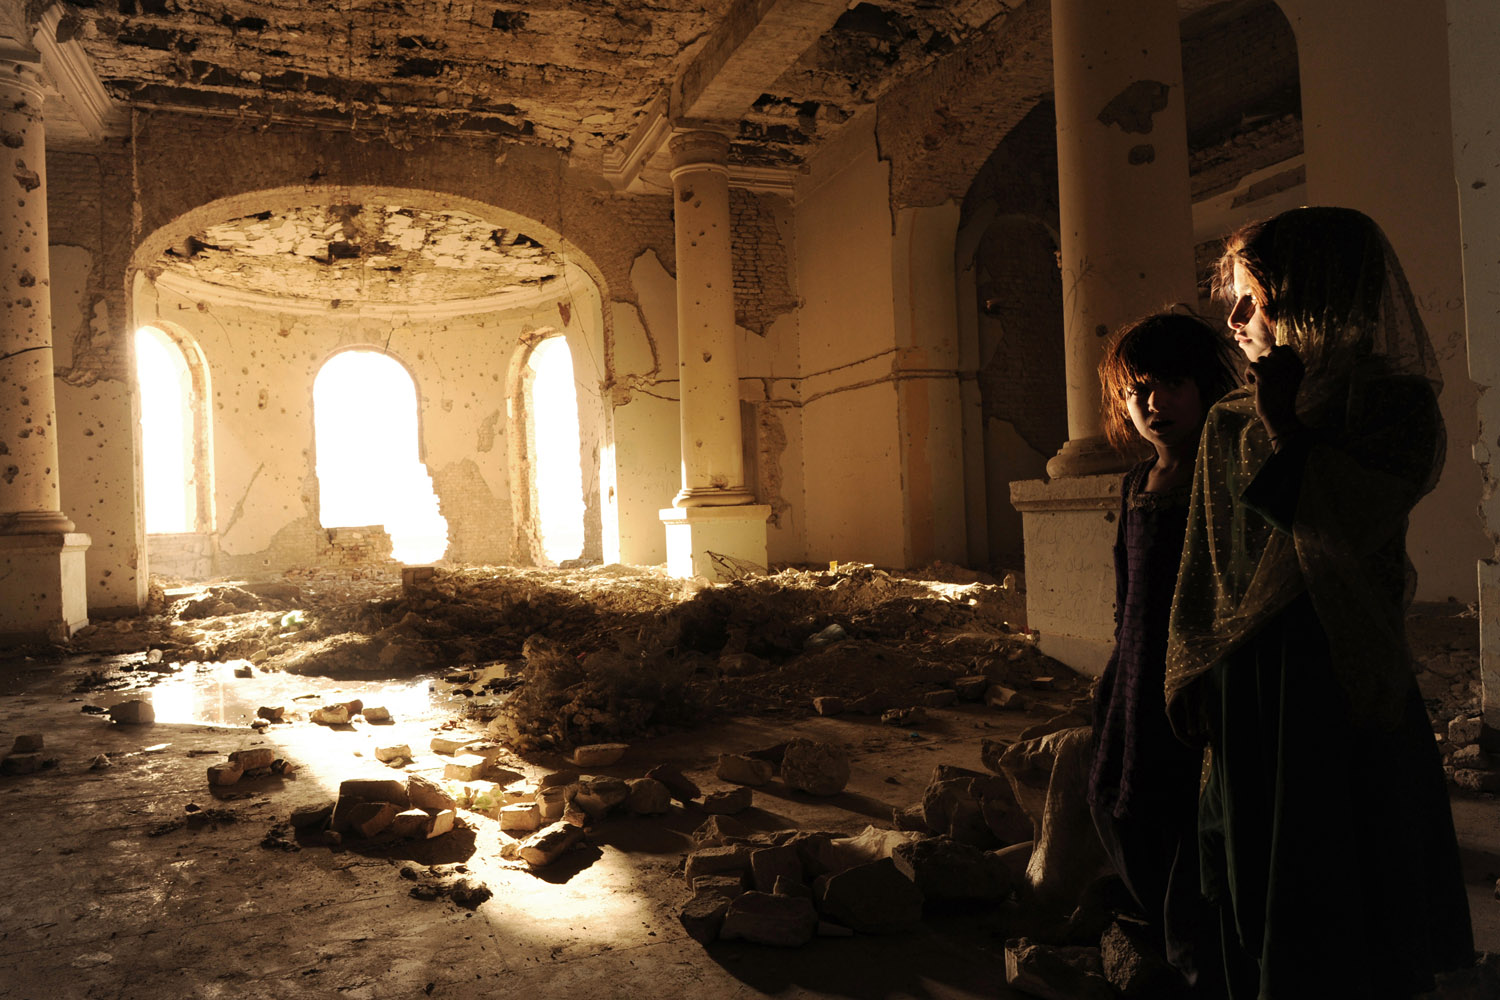 The nomadic Kuchi people seek refuge in the ruins of Darulaman Palace in Kabul, Afghanistan, after violent ethnic disputes with the Hazaras, October 17, 2010.